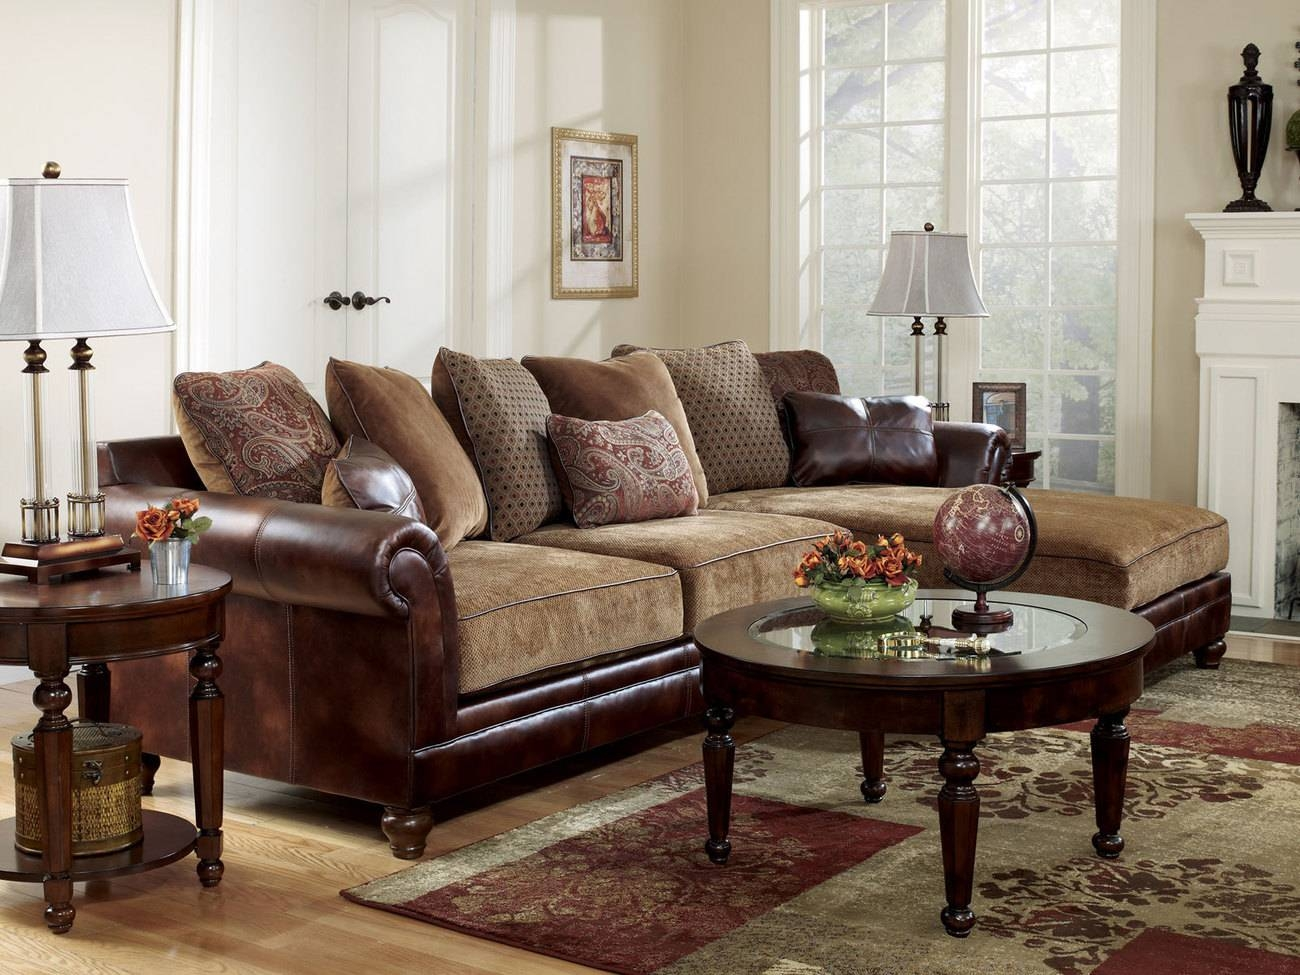 Rustic Leather Sectional Sofa - Bible-Saitama throughout Chenille And Leather Sectional Sofa (Image 25 of 30)